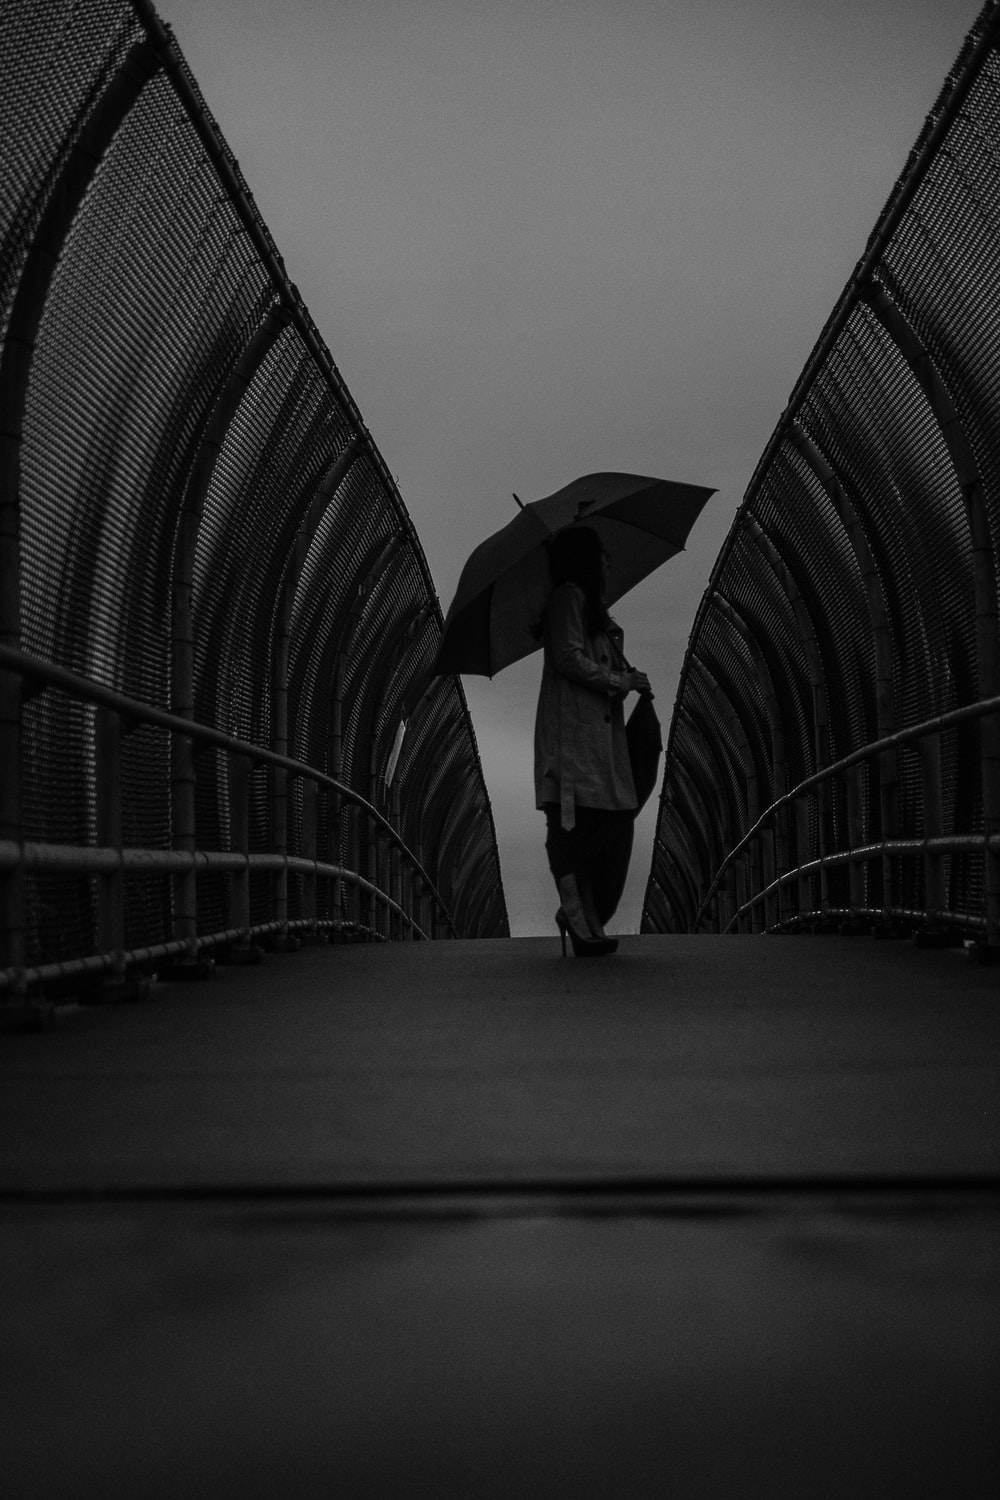 grayscale photography of woman using umbrella while standing on pathway